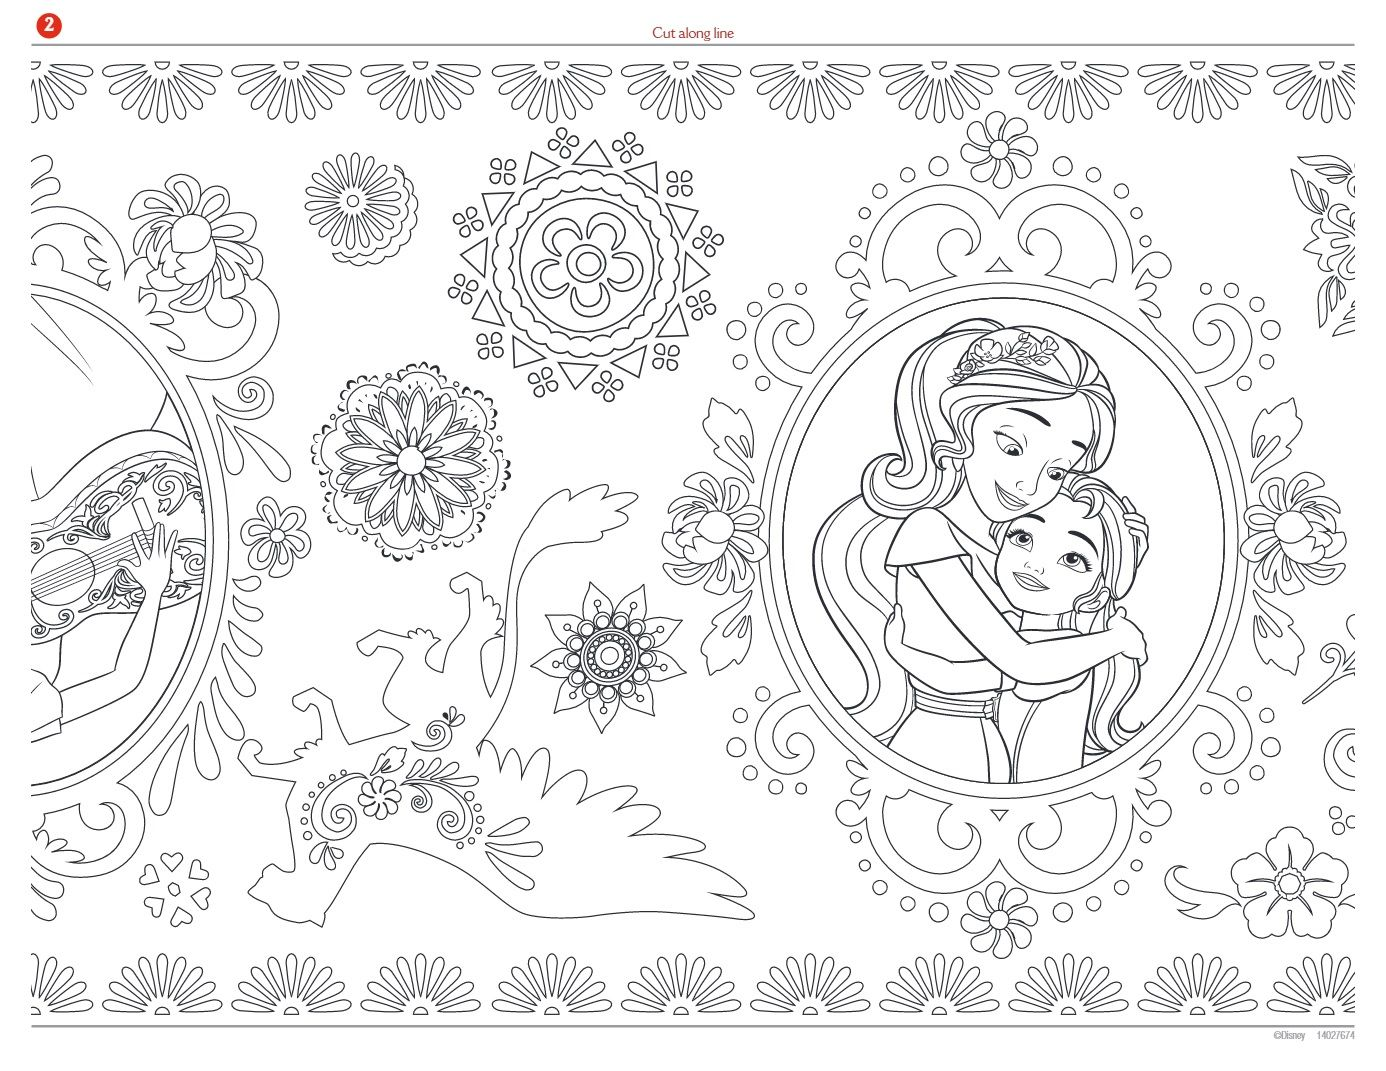 Princess elena coloring page